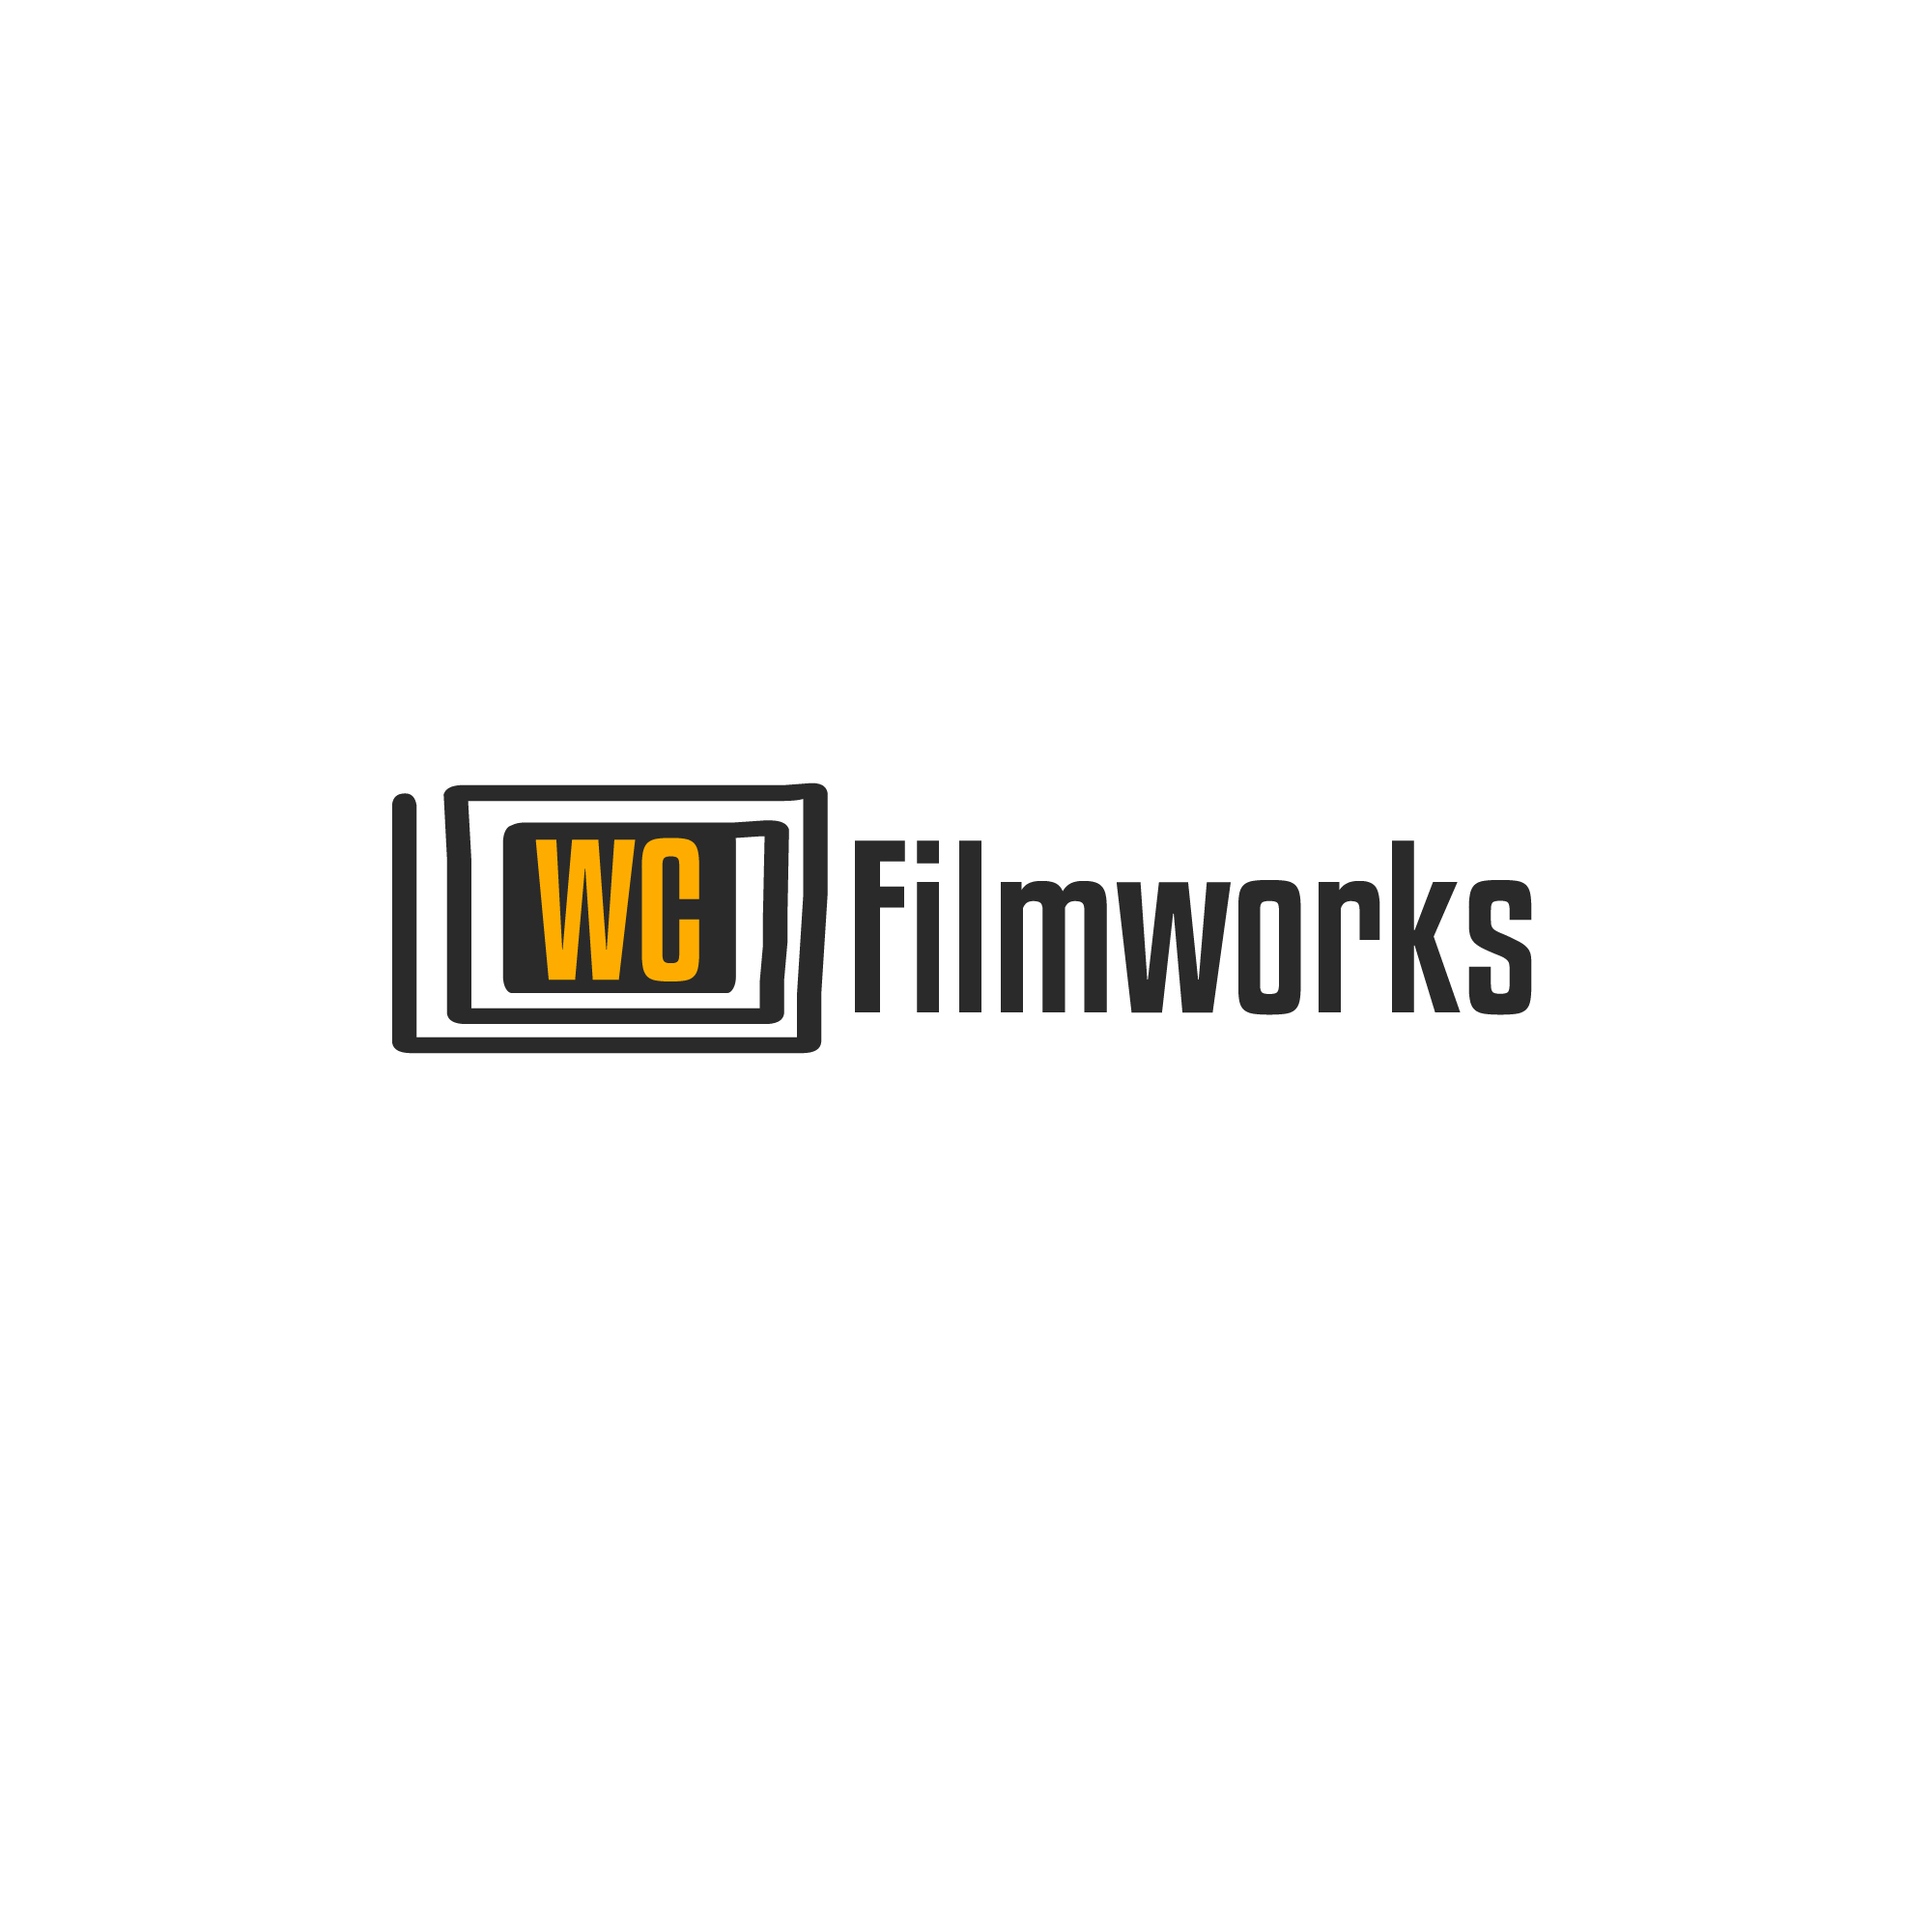 Create an eye-catching logo for film/video production company